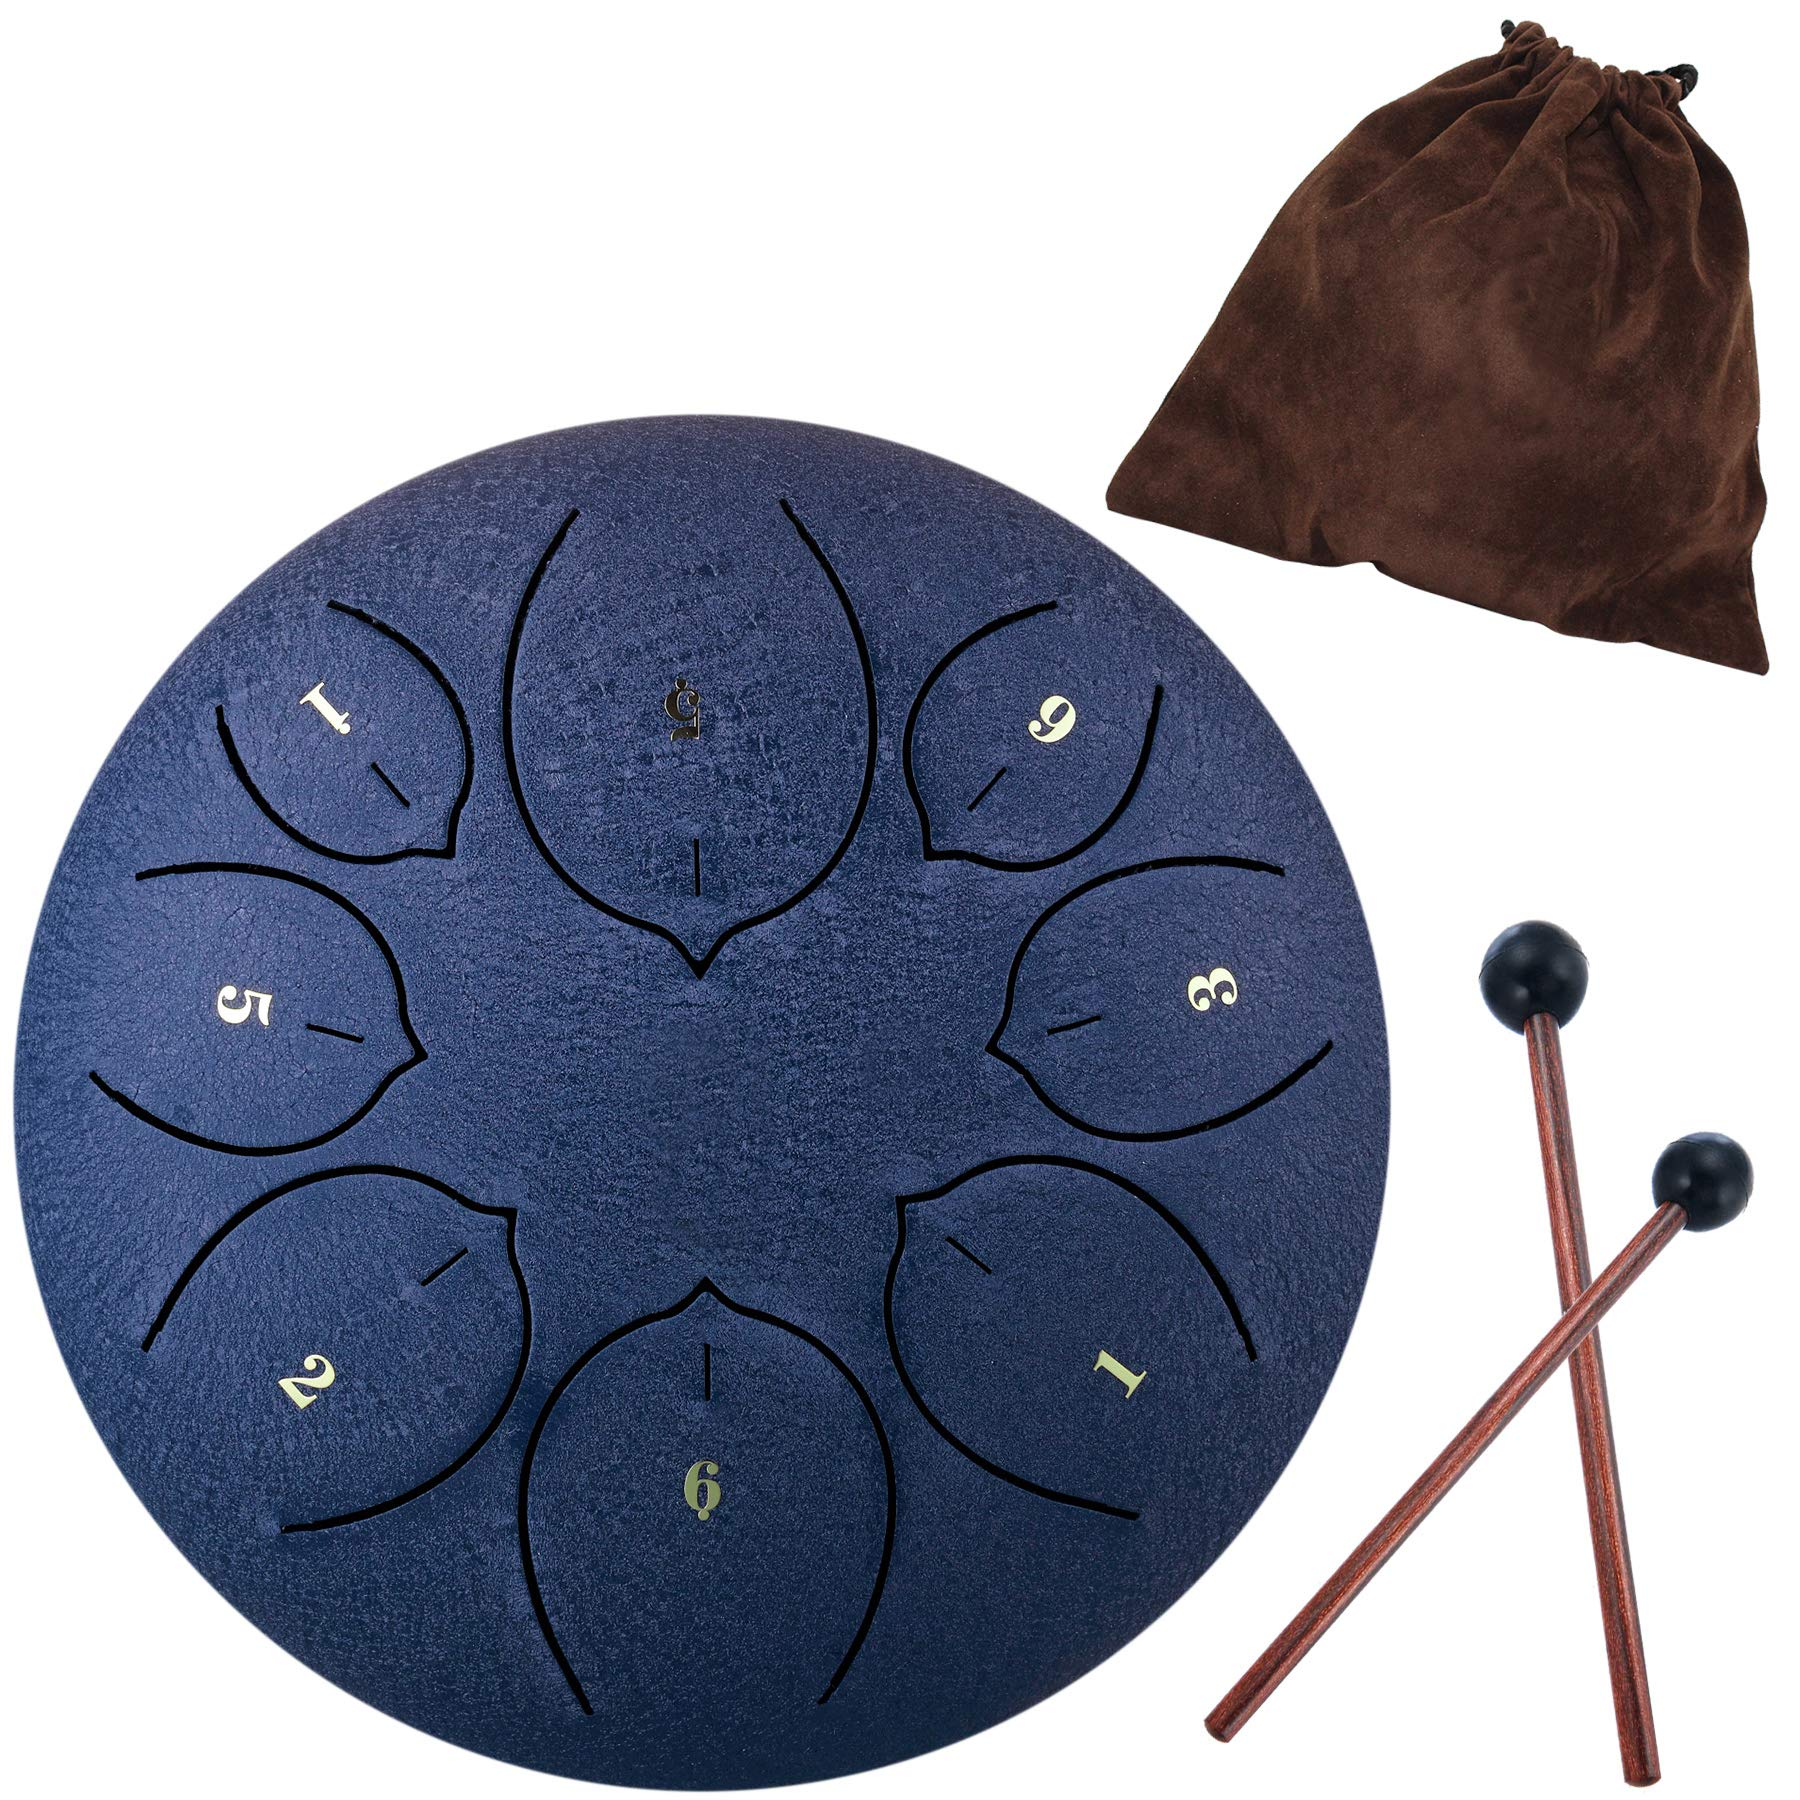 Steel Tongue Drum - 8 Notes 6 inches - Percussion Instrument -Handpan Drum with Bag, Music Book, Mallets, Finger Picks by Lomuty